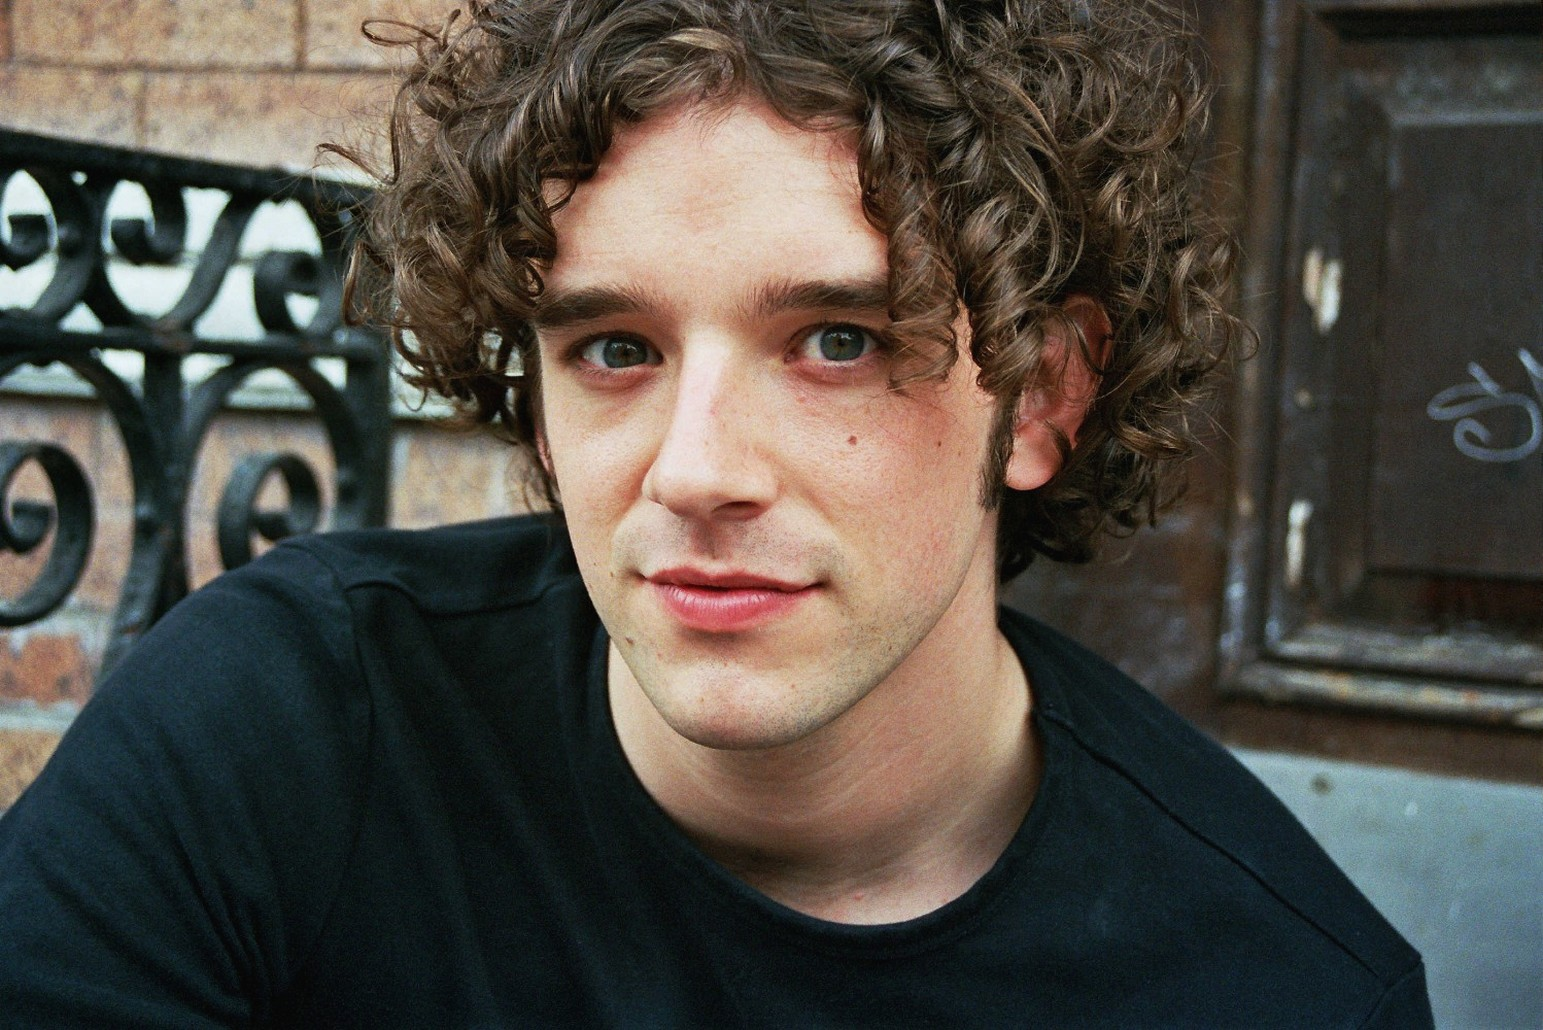 Curly Hairstyles Men - Curly Hairstyles For Men-men-curly-hair-1.jpg